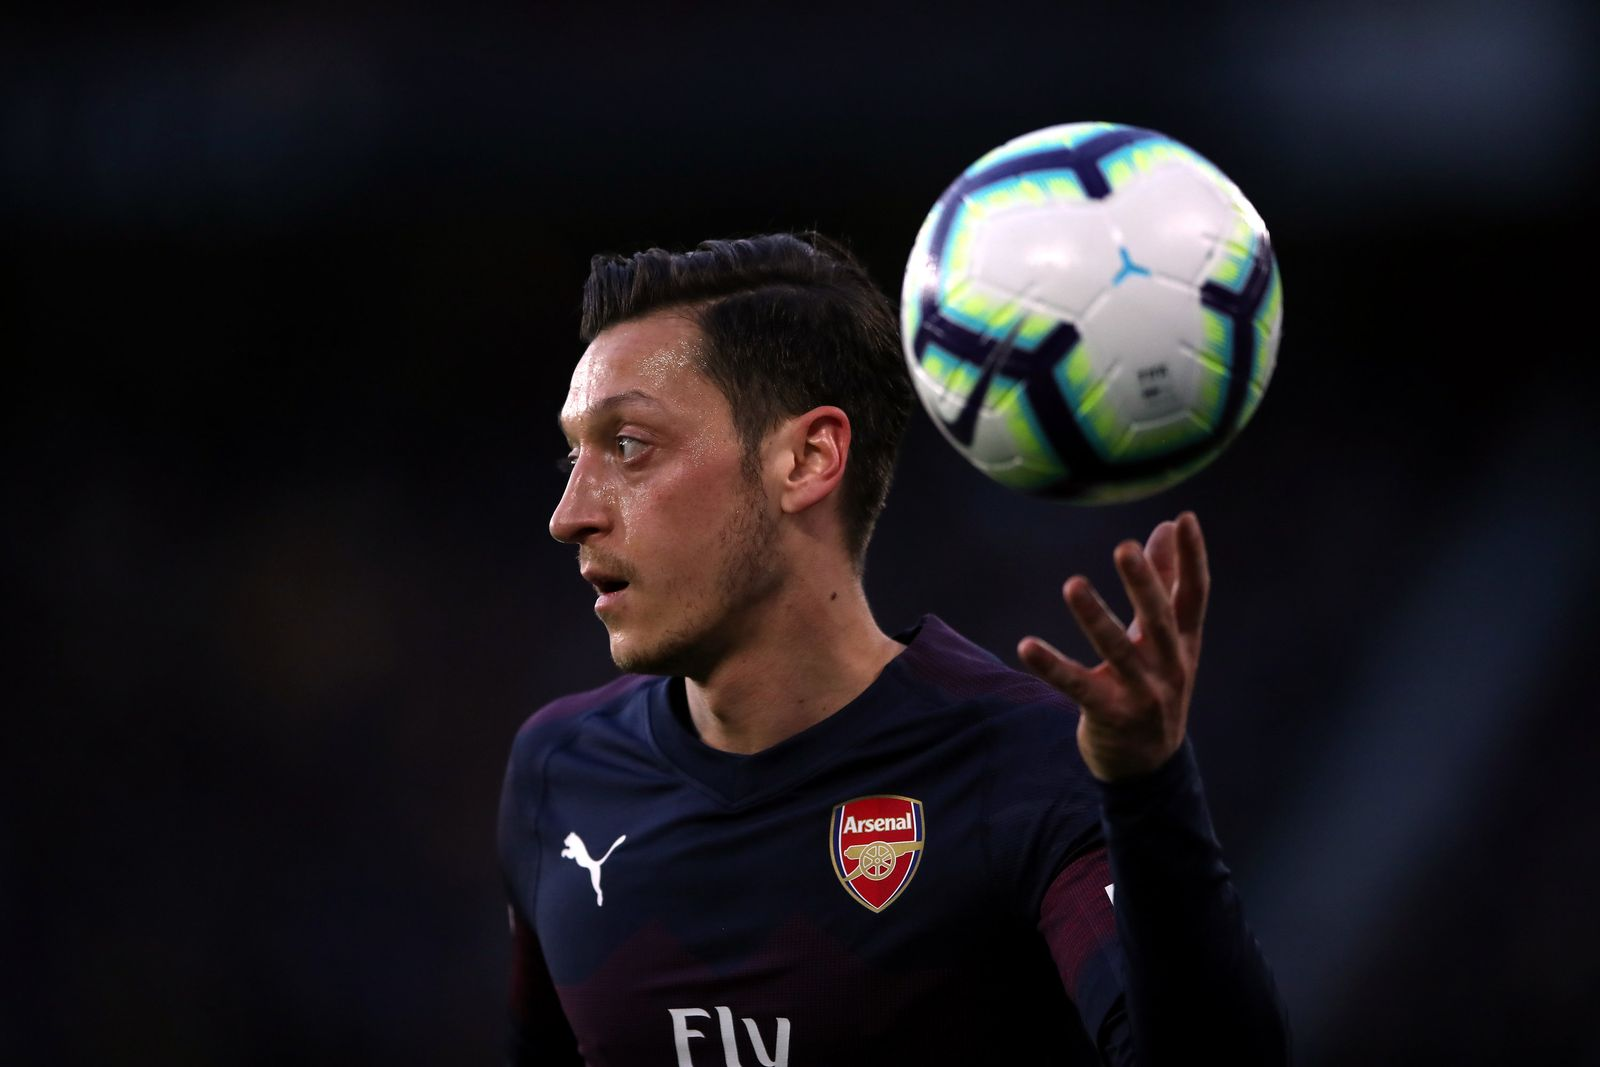 Arsenals Mesut Özil